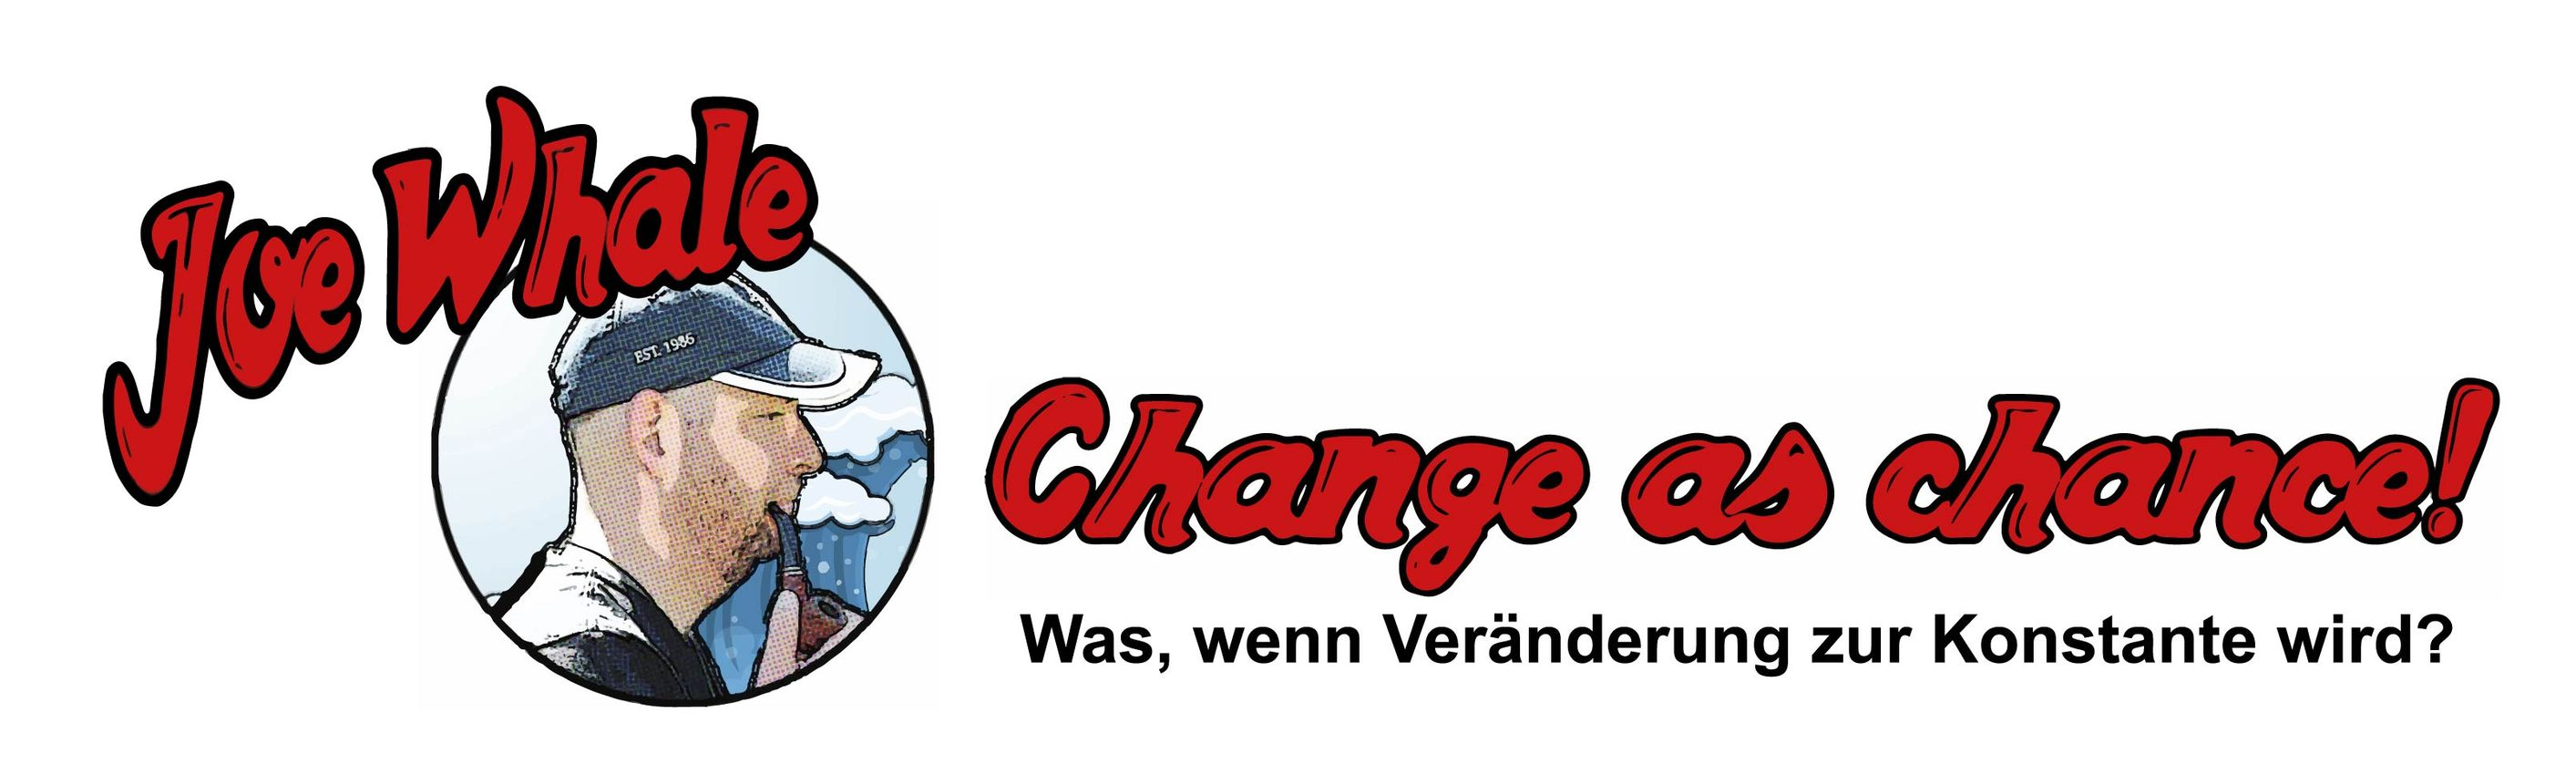 joe-whale-change-as-a-chance